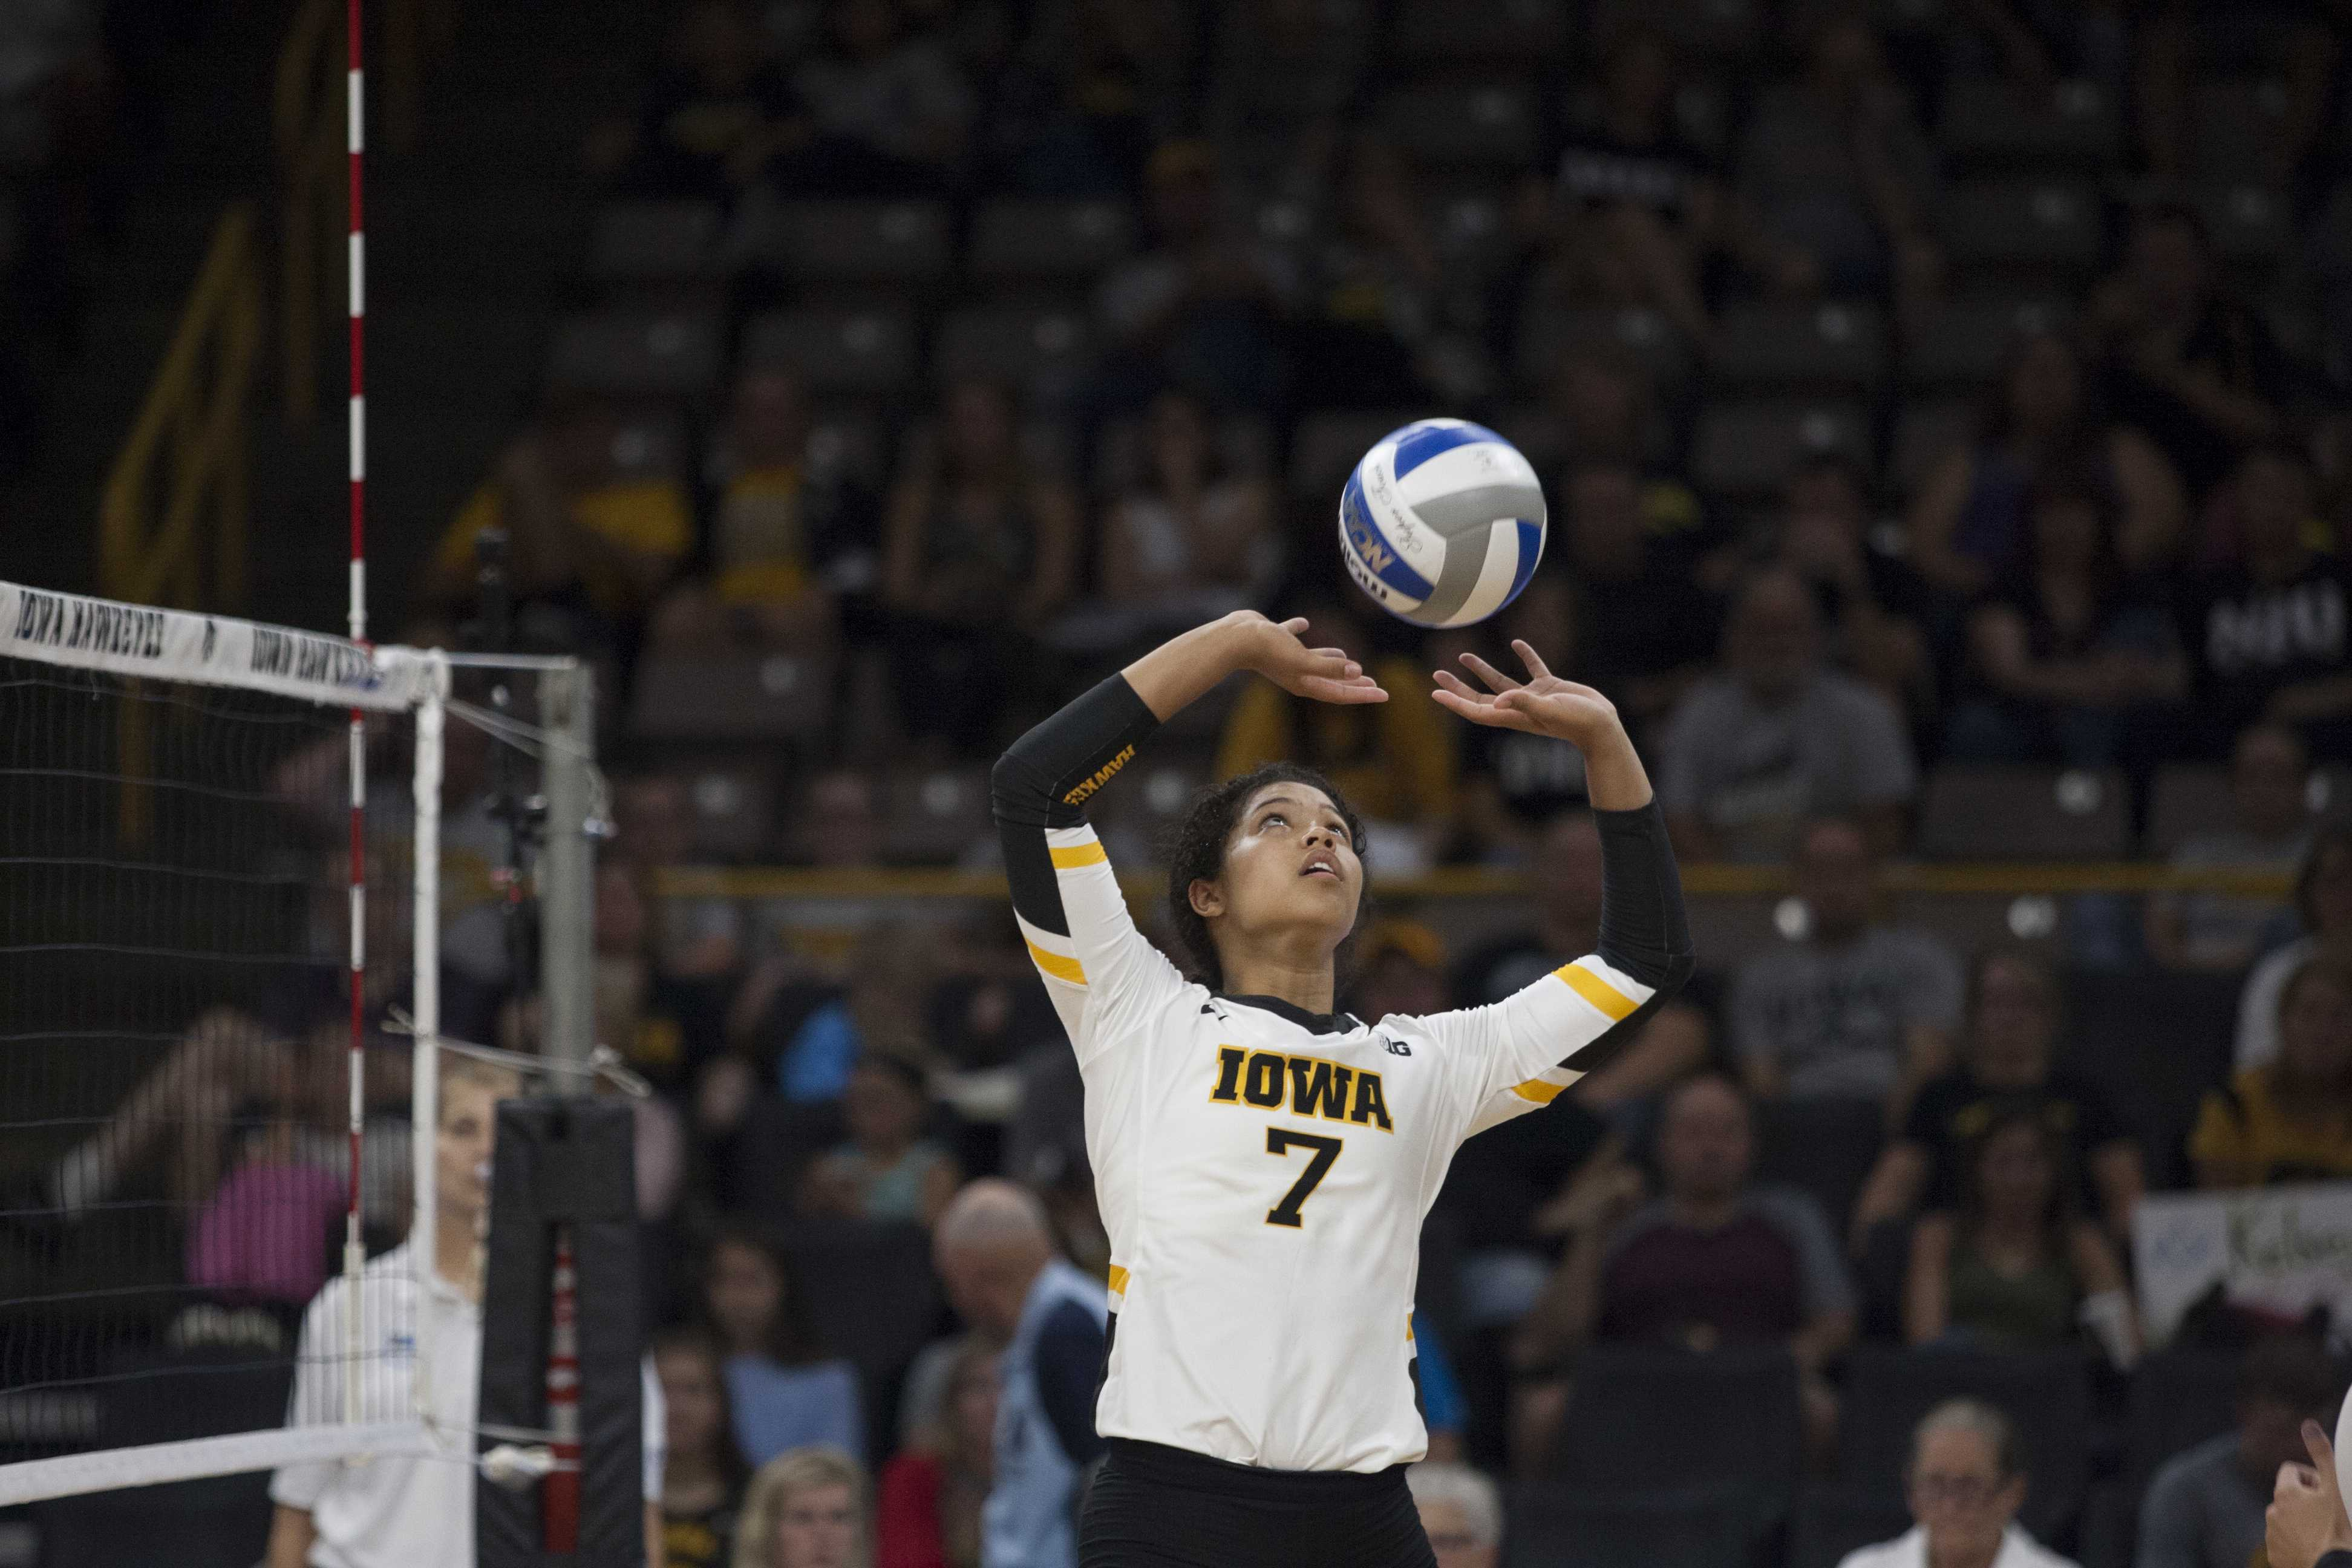 Brie Orr sets the ball up for a spike. Hawkeyes defeat the Huskies in volleyball winning the first three games. The game against Northern Illinois University took place at Carver Hawkeye Arena on September 9, 2017. (Ashley Morris/The Daily Iowan)